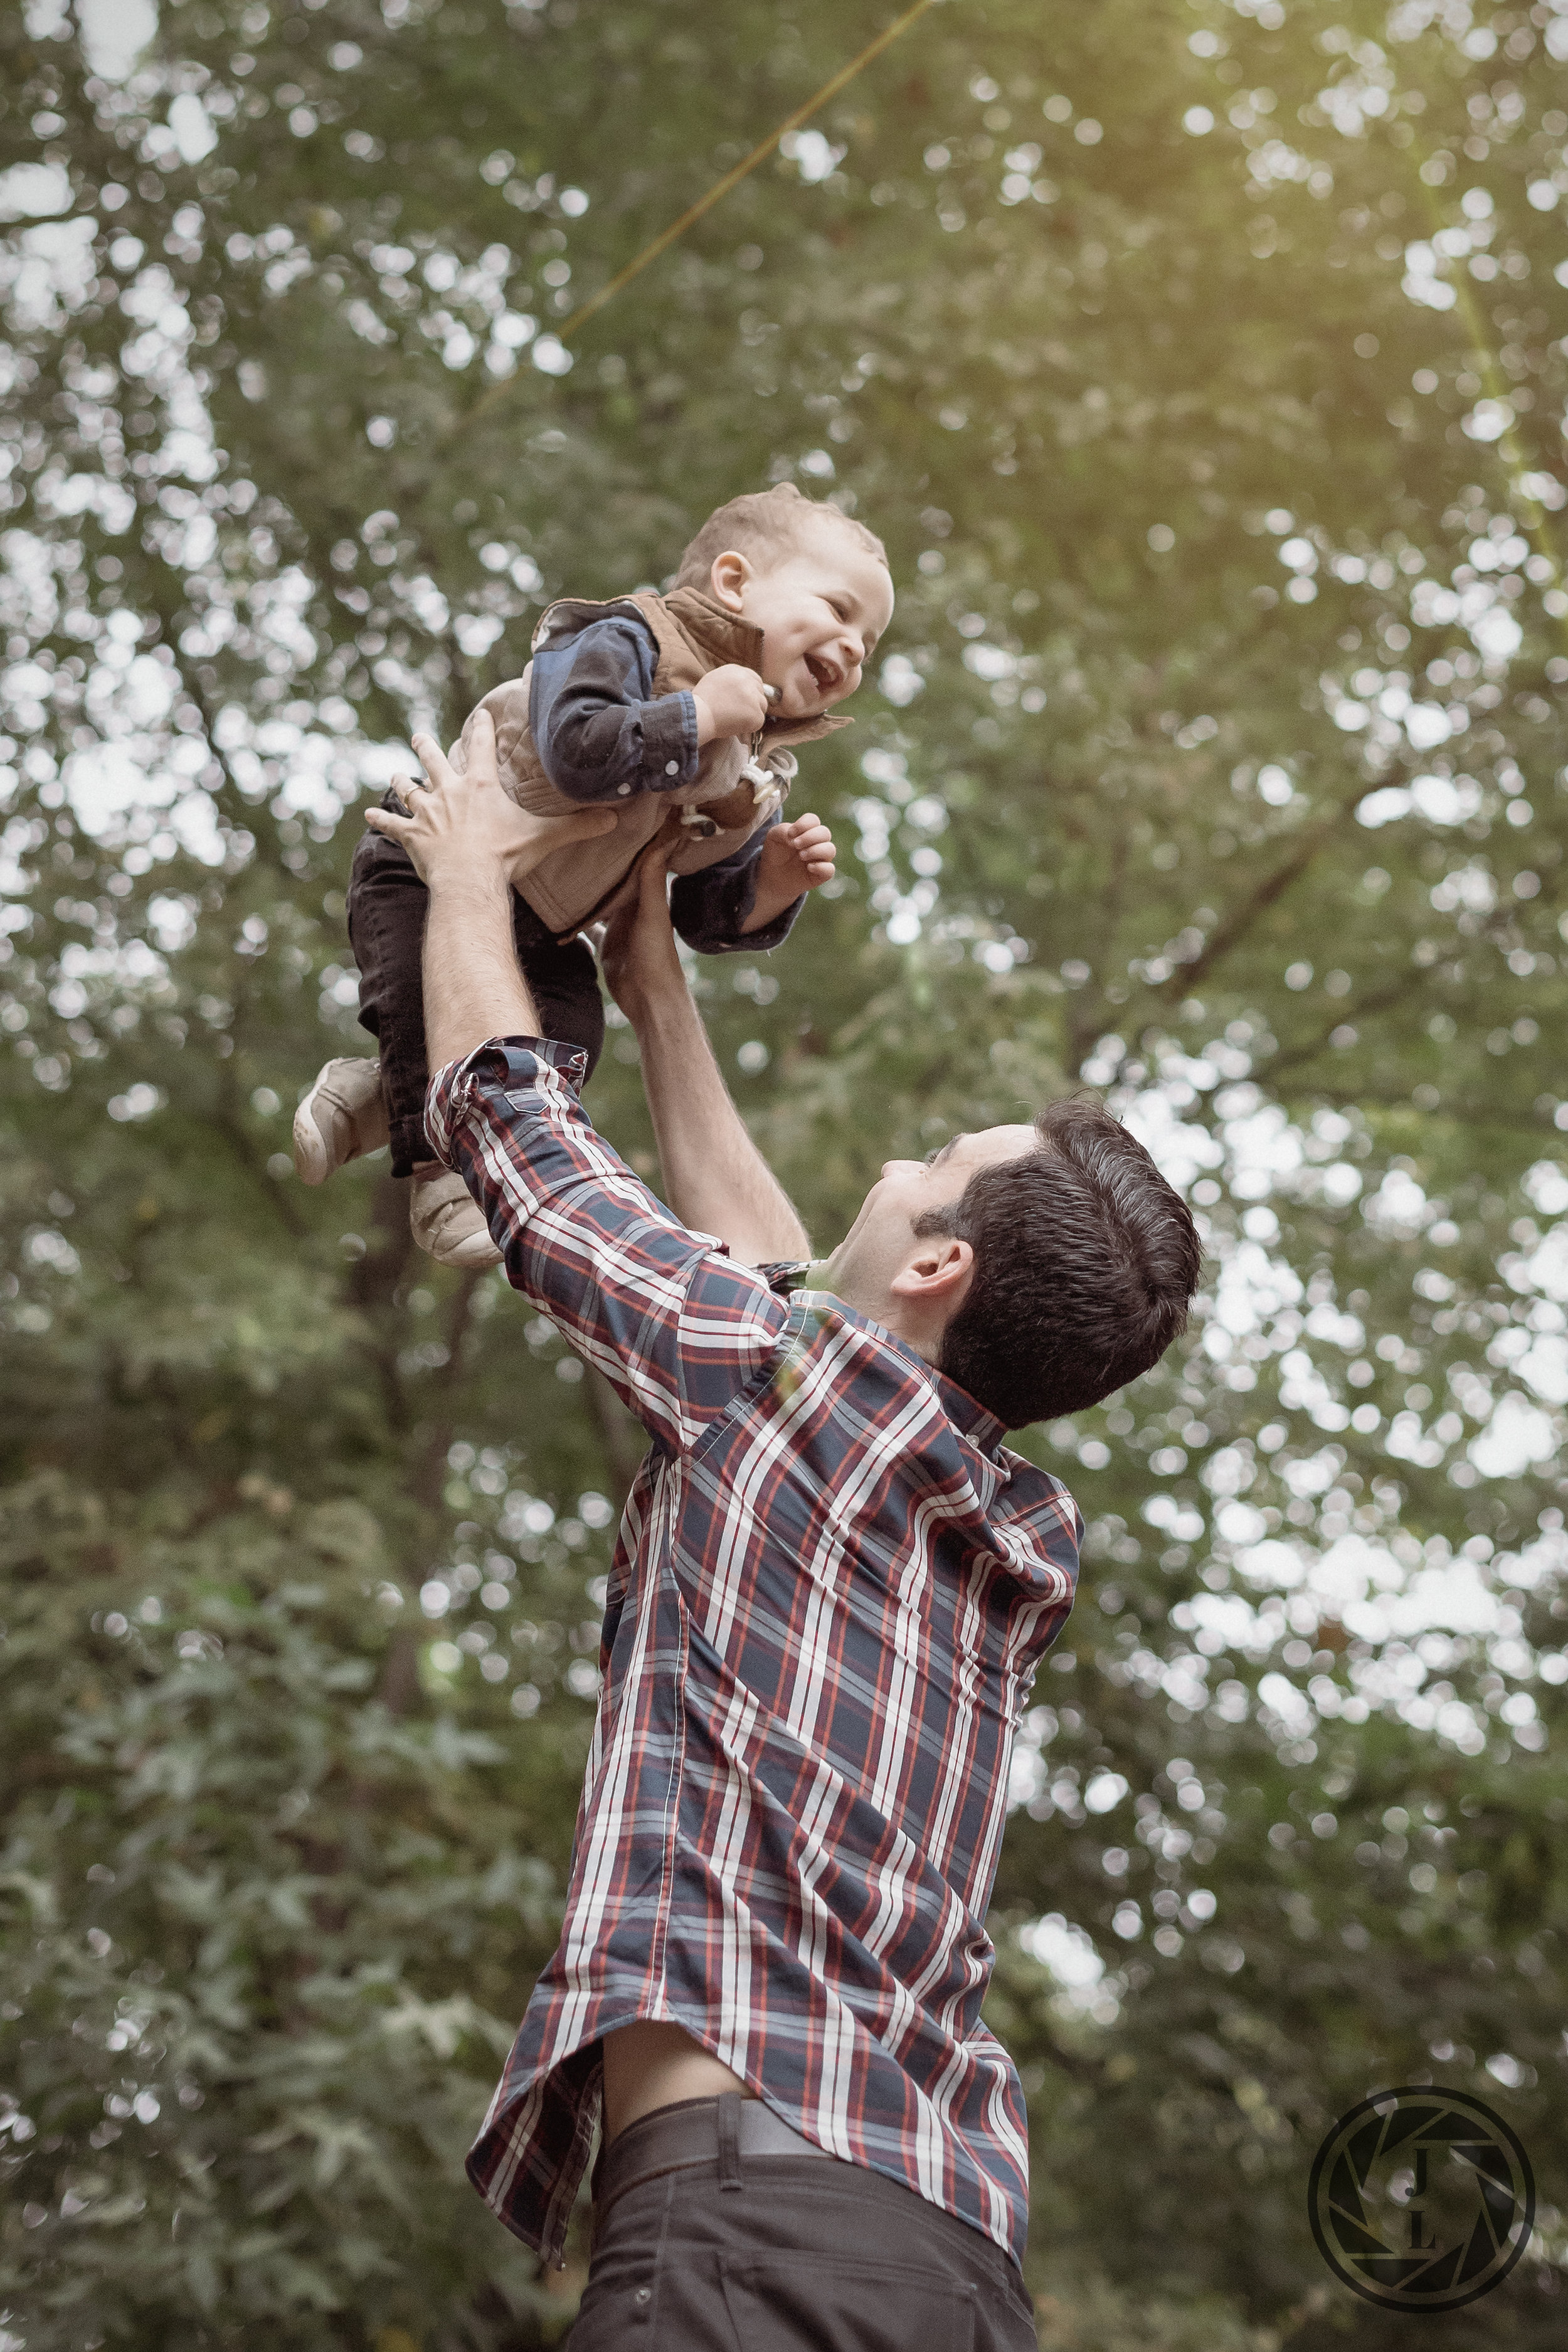 A father tossing his laughing son in the air